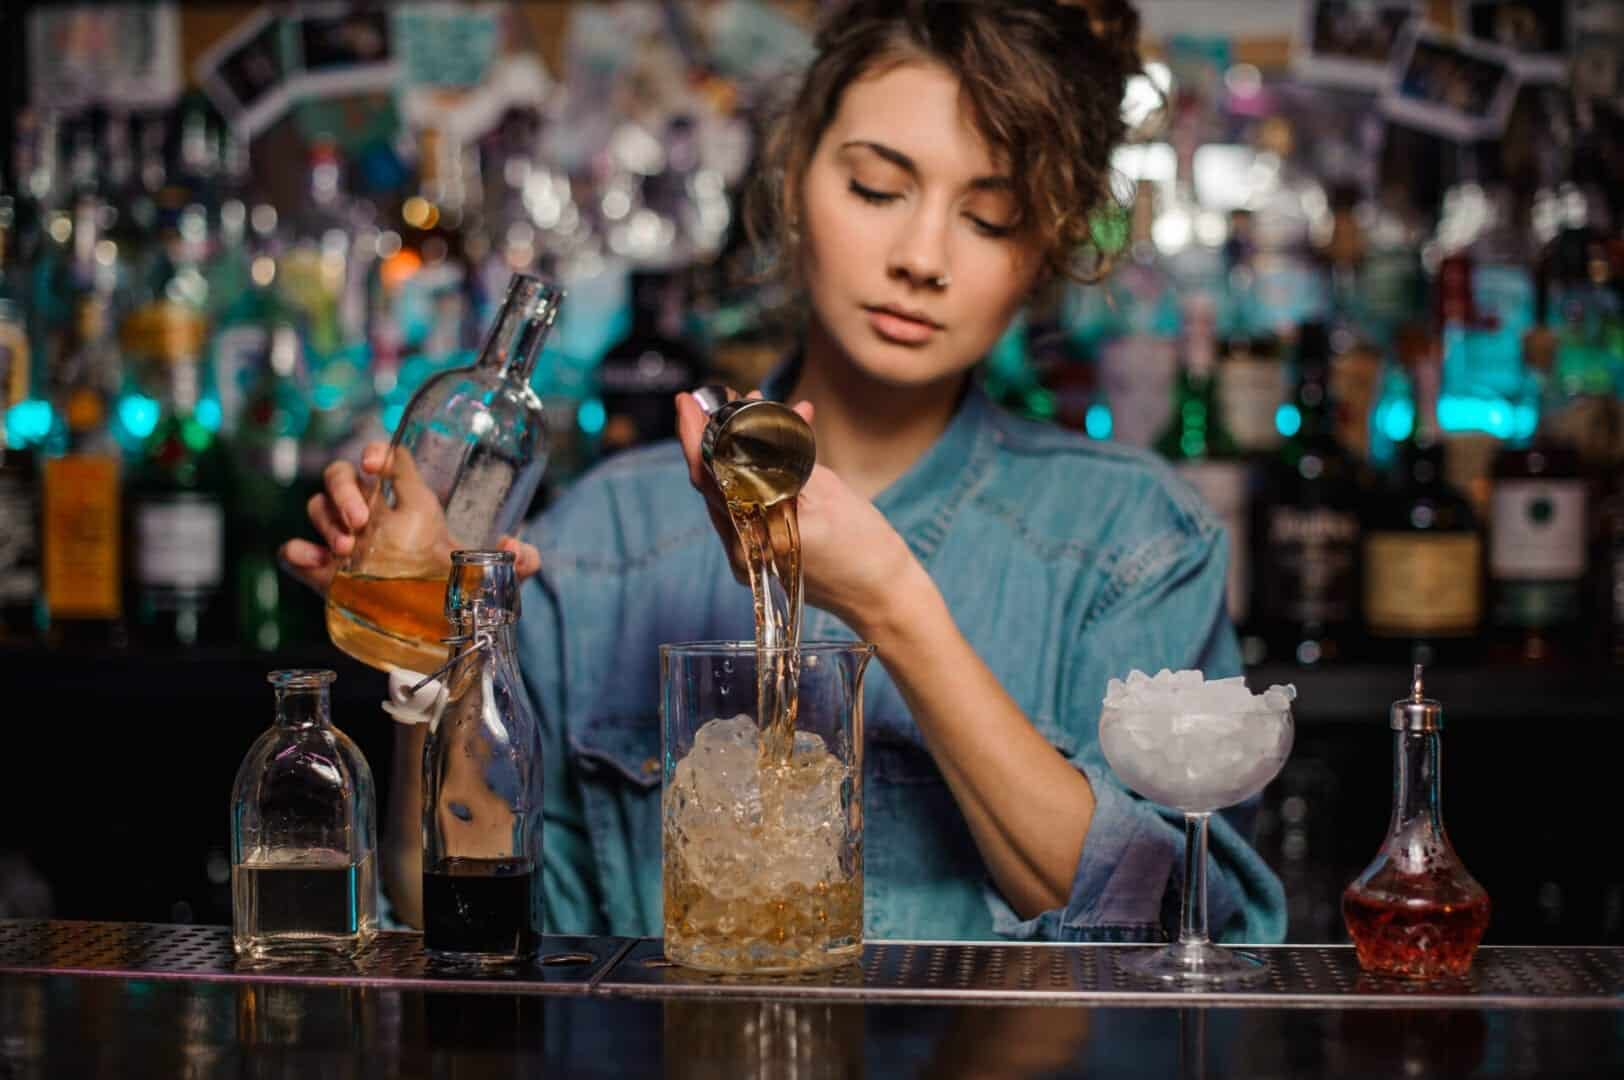 Bartender girl pouring to the measuring glass cup with ice cubes an alcoholic drink from jigger on the bar counter on the blurred background